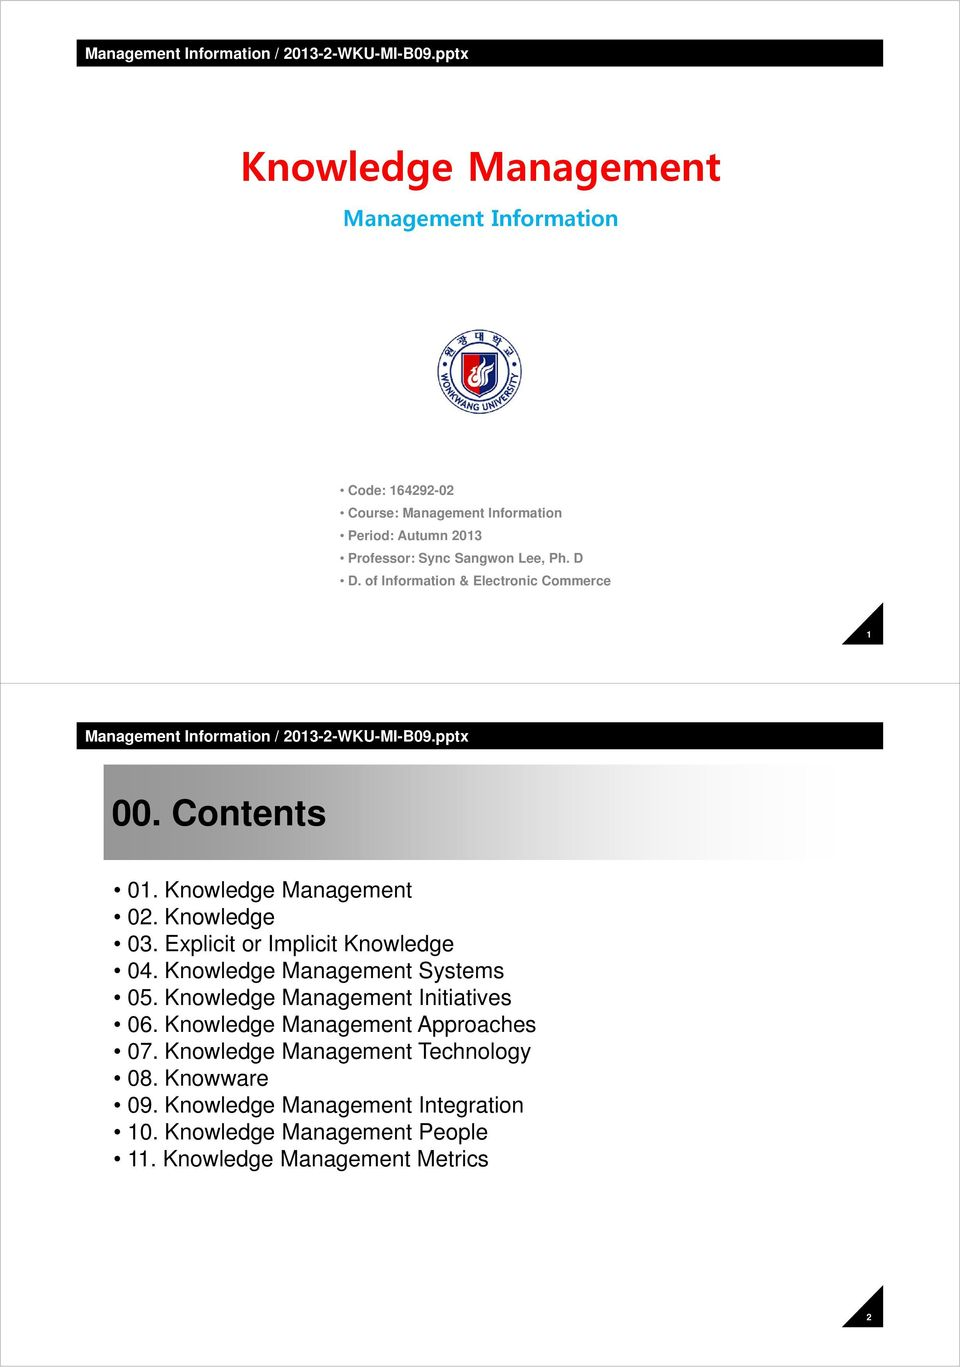 Explicit or Implicit Knowledge 04. Knowledge Management Systems 05. Knowledge Management Initiatives 06.